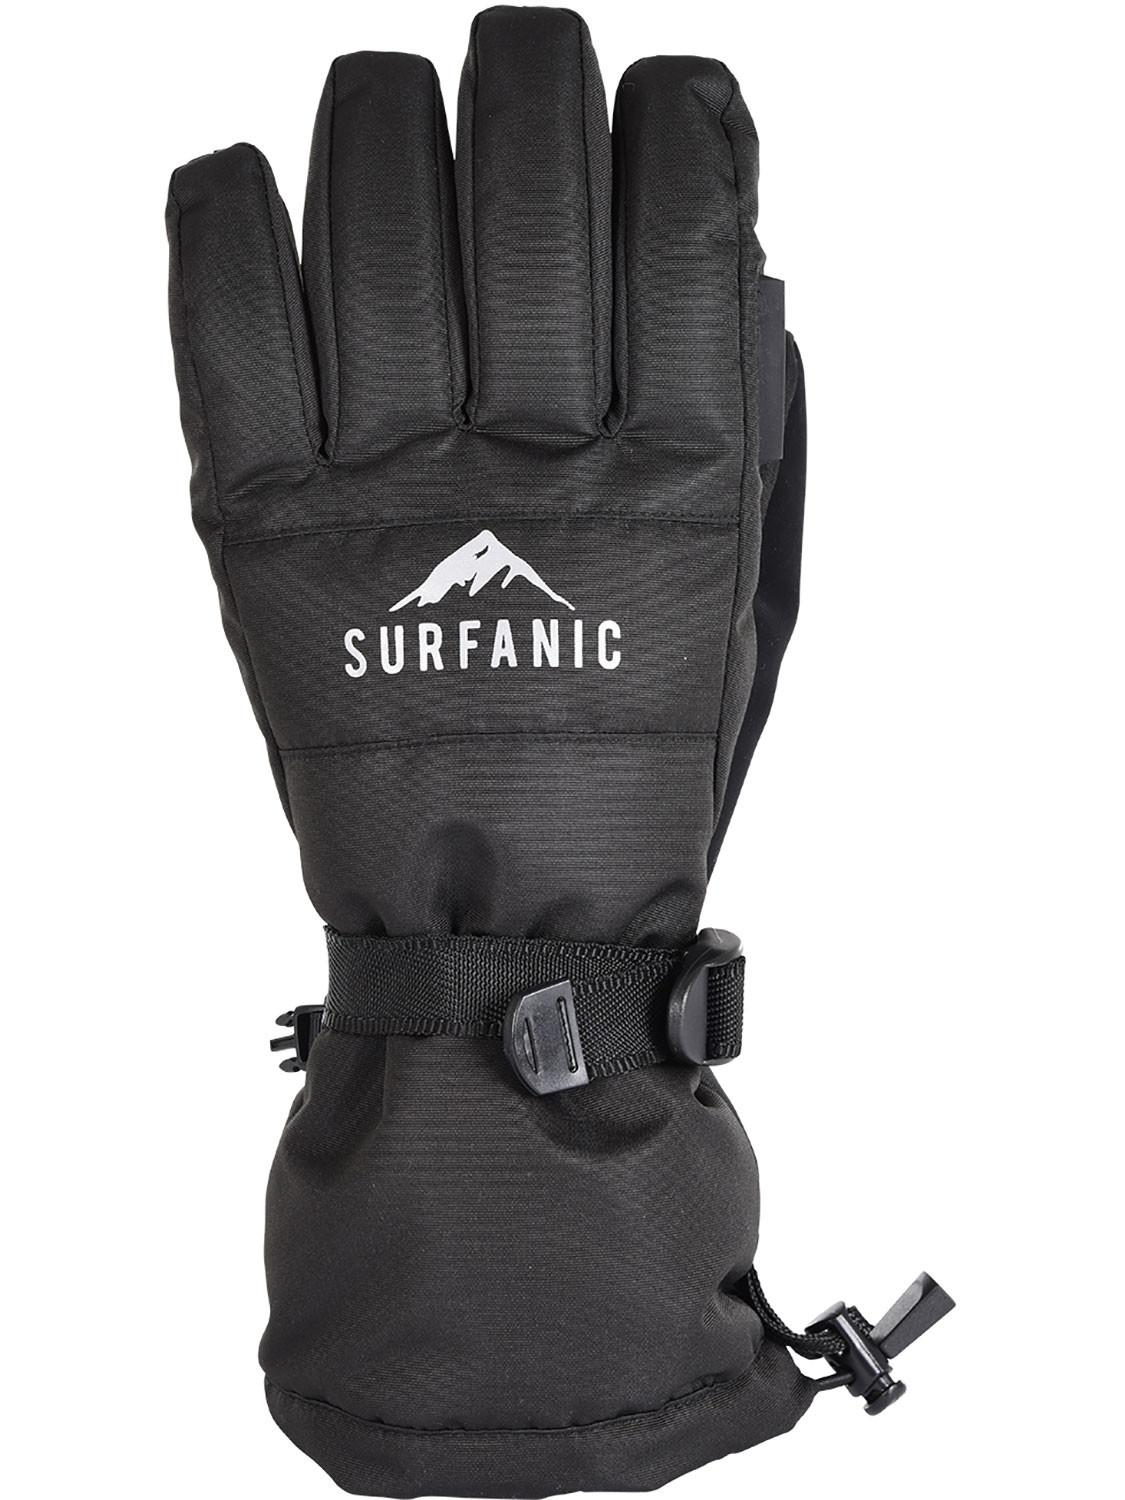 Barrier Surftex Glove